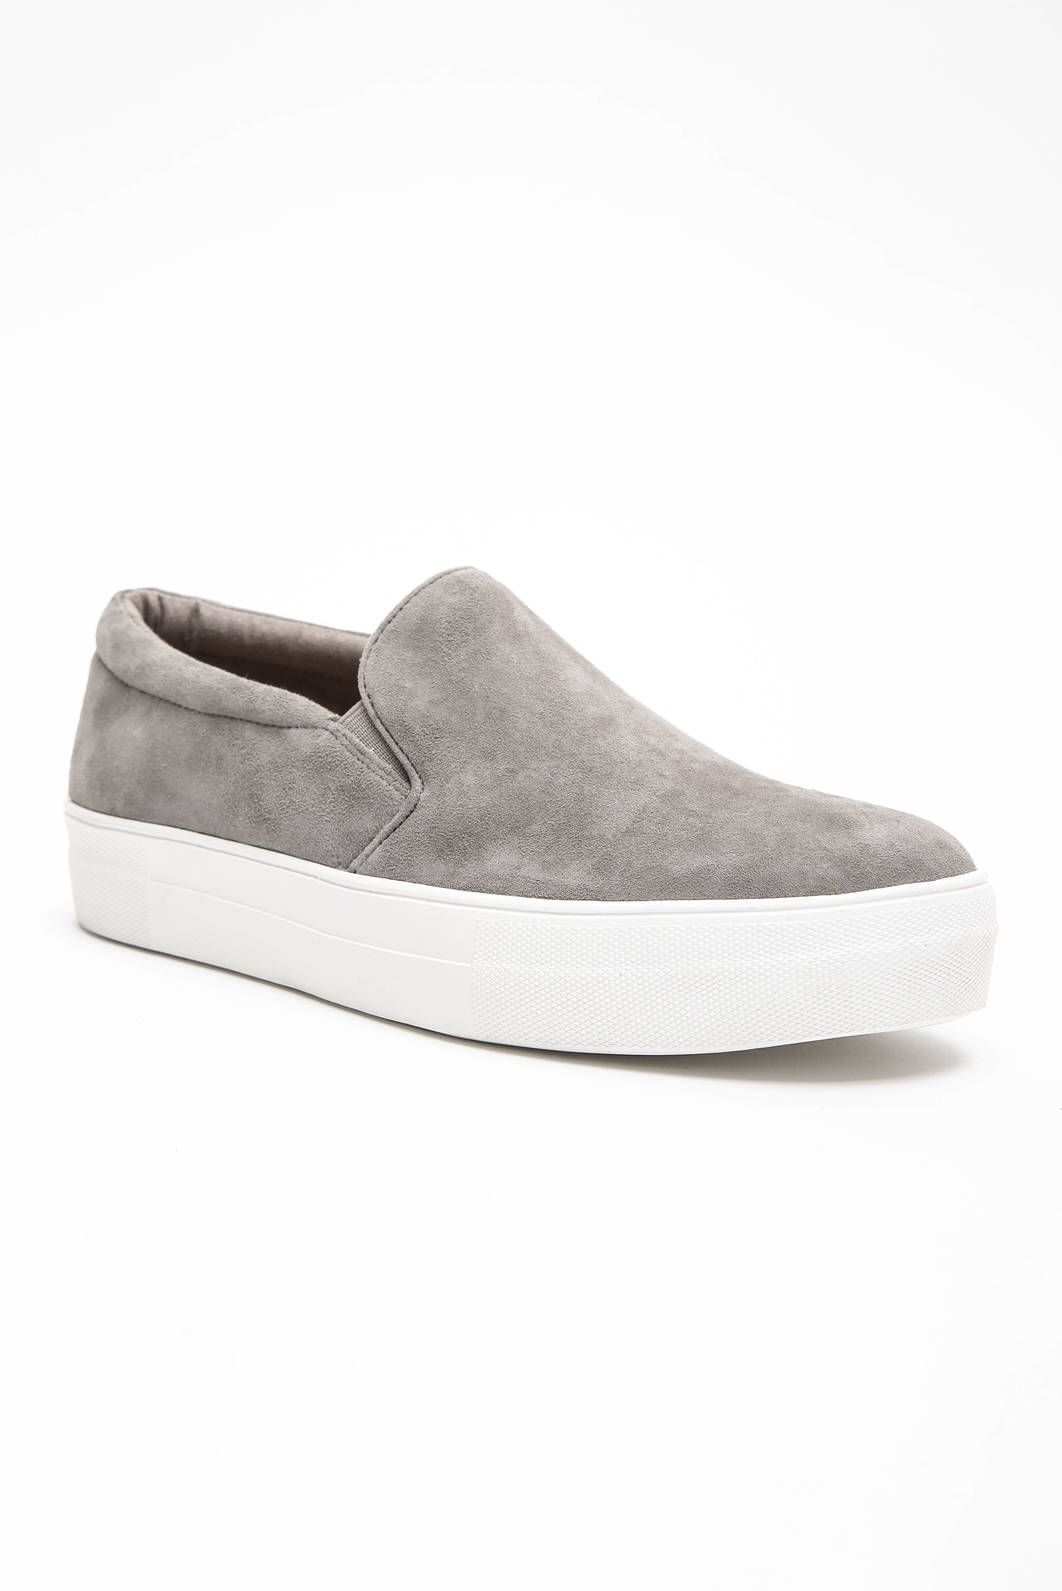 3f16e3dd72e Steve Madden Gills Slip On Sneakers in GREY